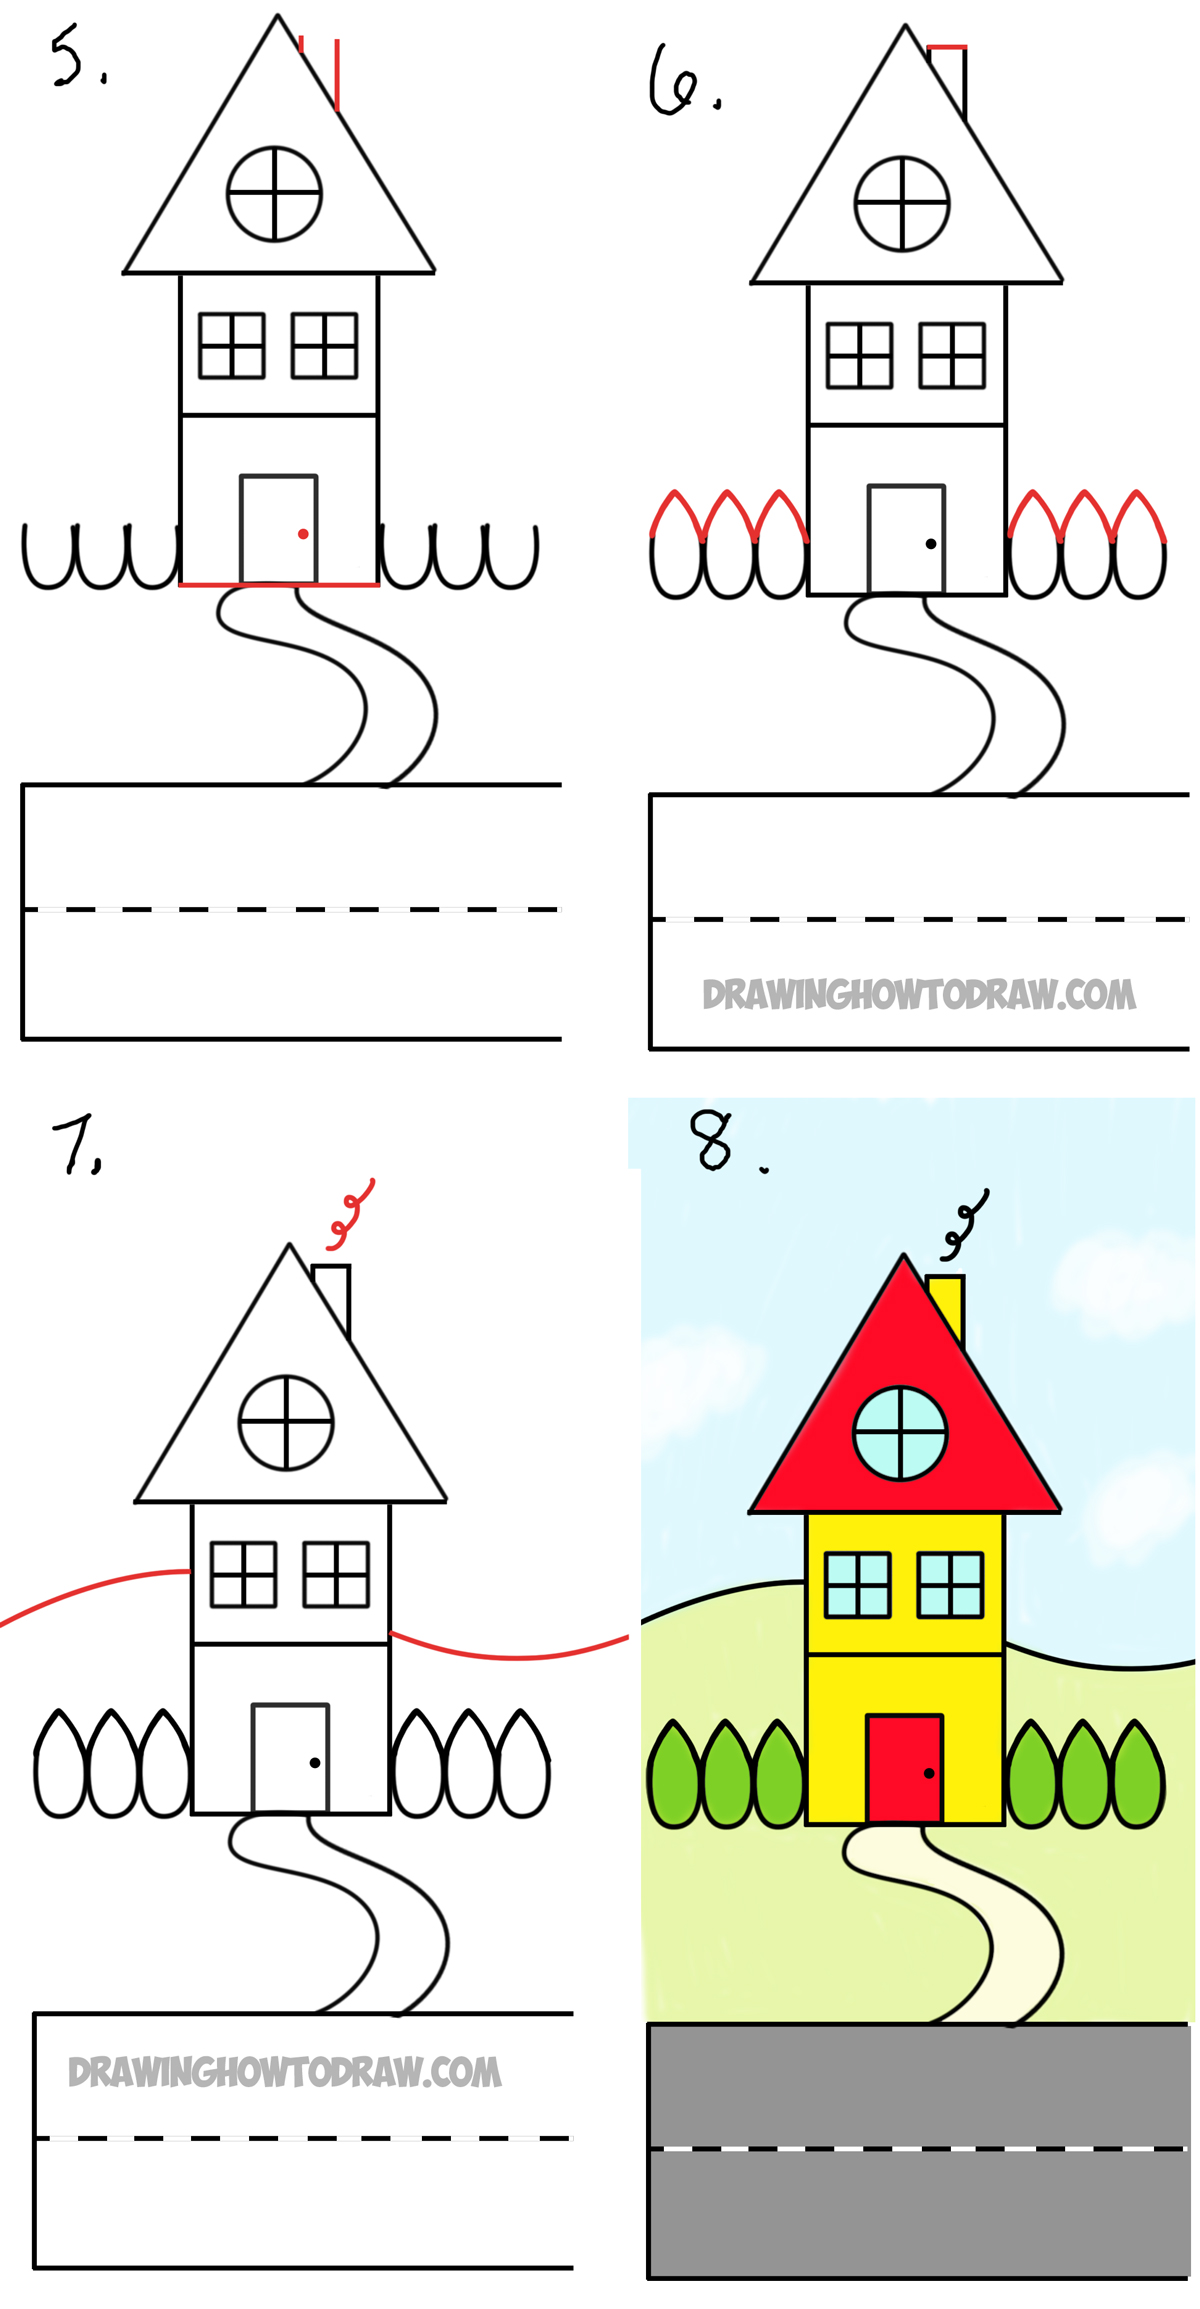 How To Draw A Cartoon House From The Word House An Easy